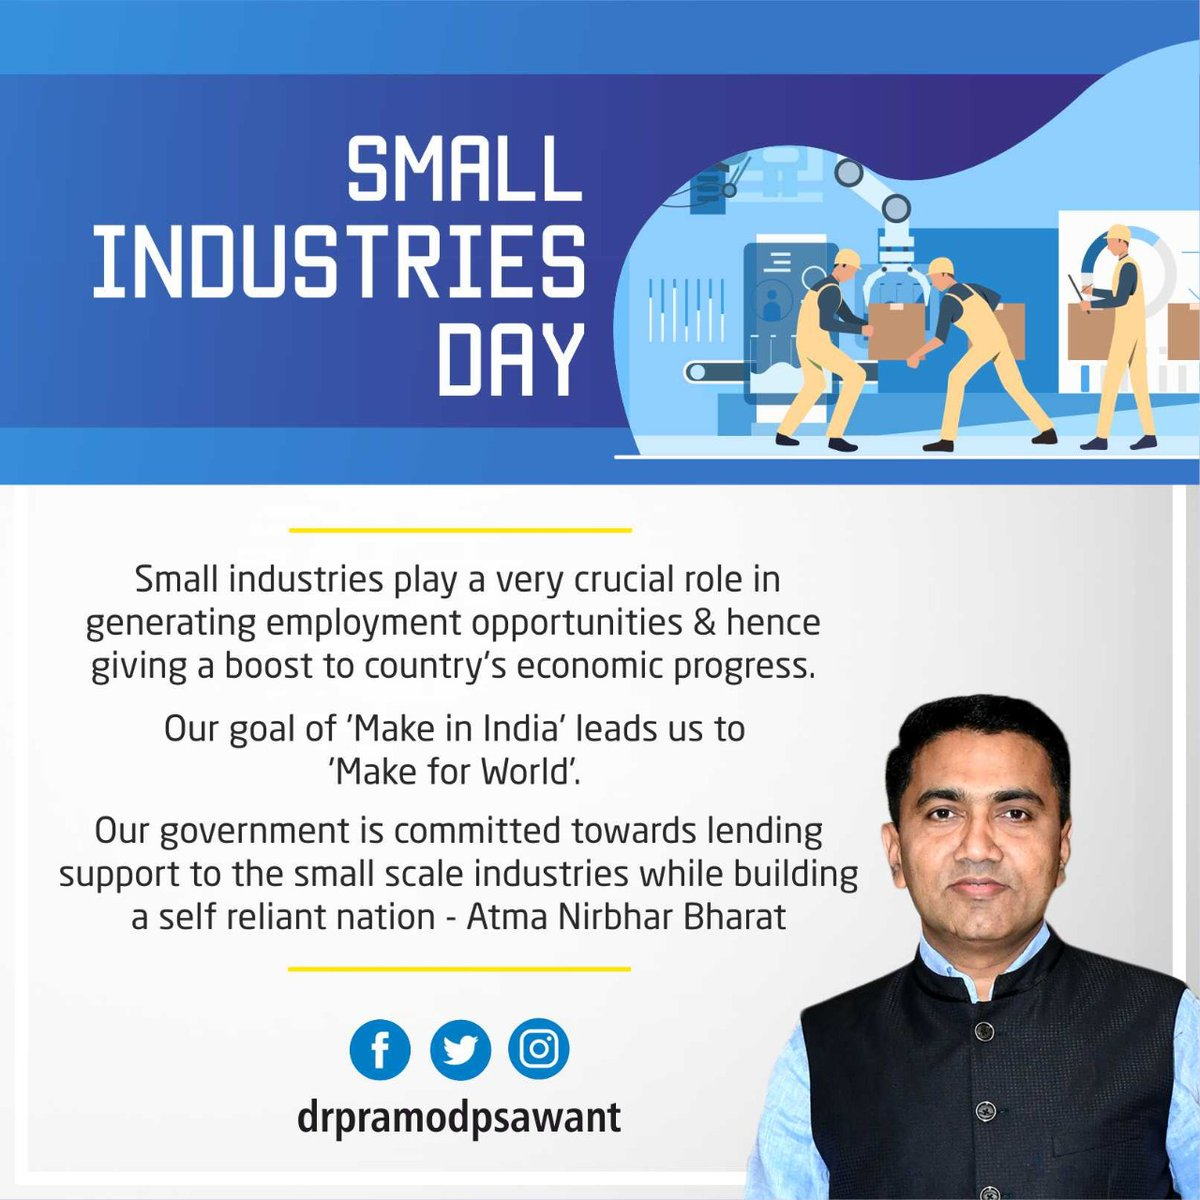 Small industries play a very crucial role in generating employment opportunities and hence giving a boost to country's economic progress.   Our goal of 'Make in India' leads us to 'Make for World'.  #SmallIndustryDay https://t.co/faHOJqxOis